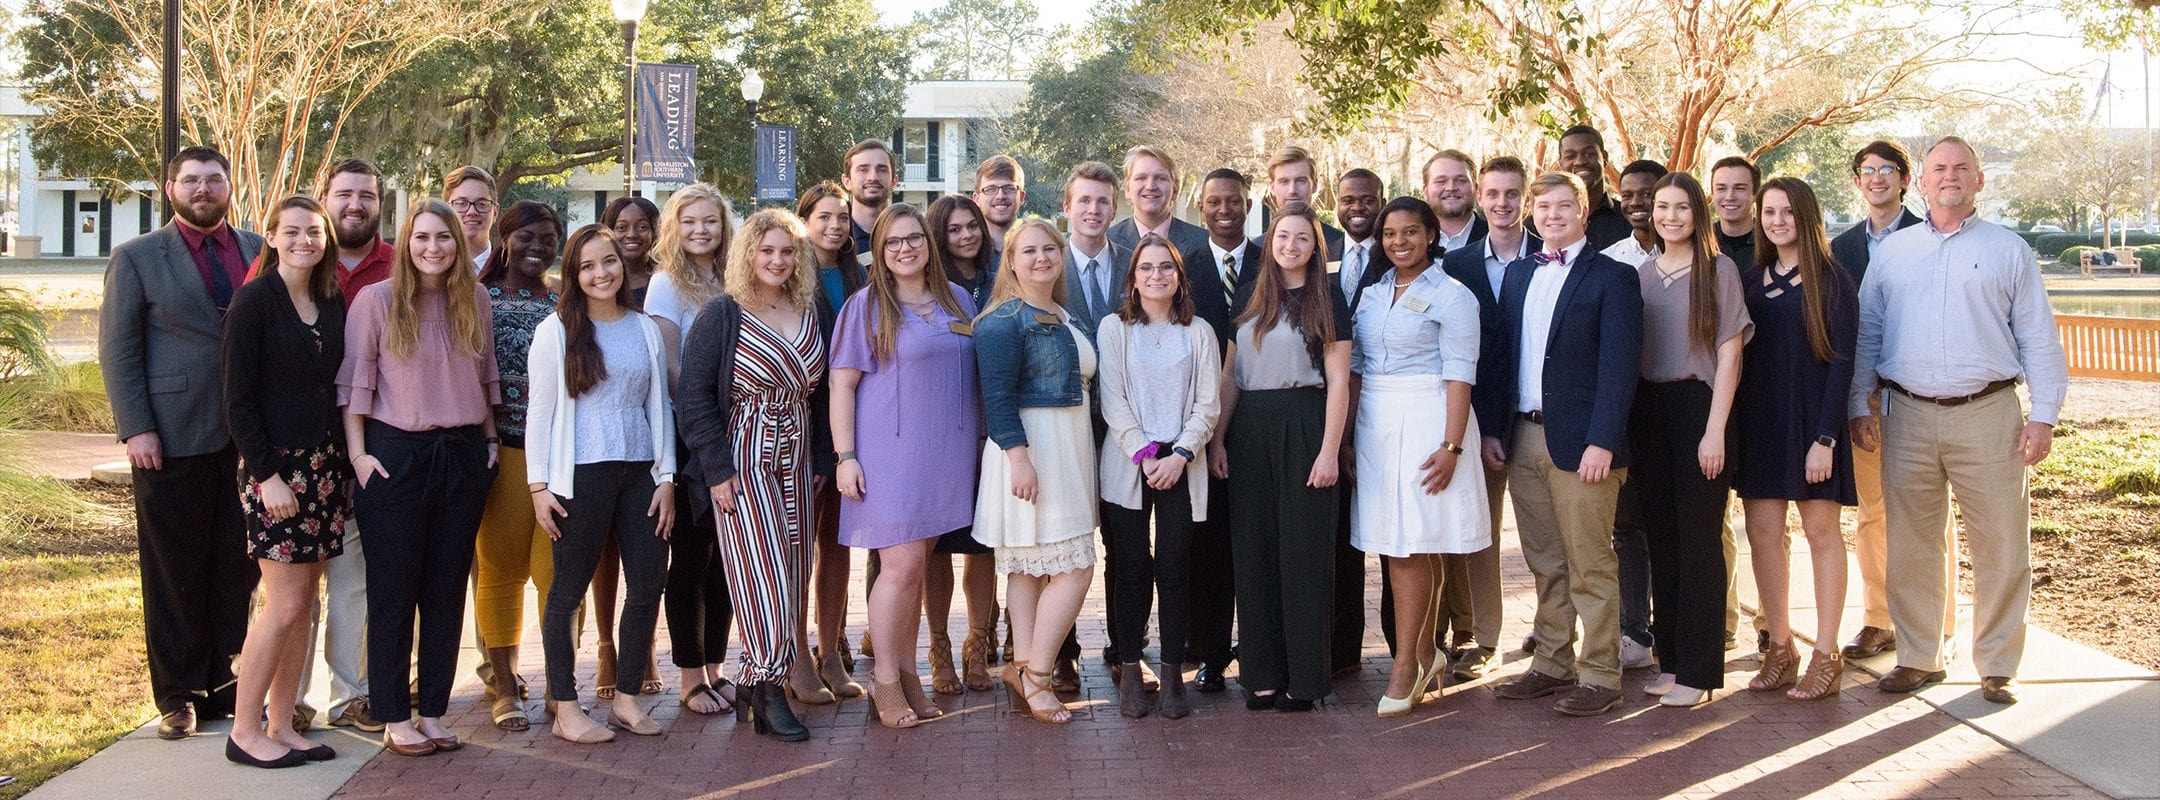 A large group photo of the members of the Student Government Association at CSU.